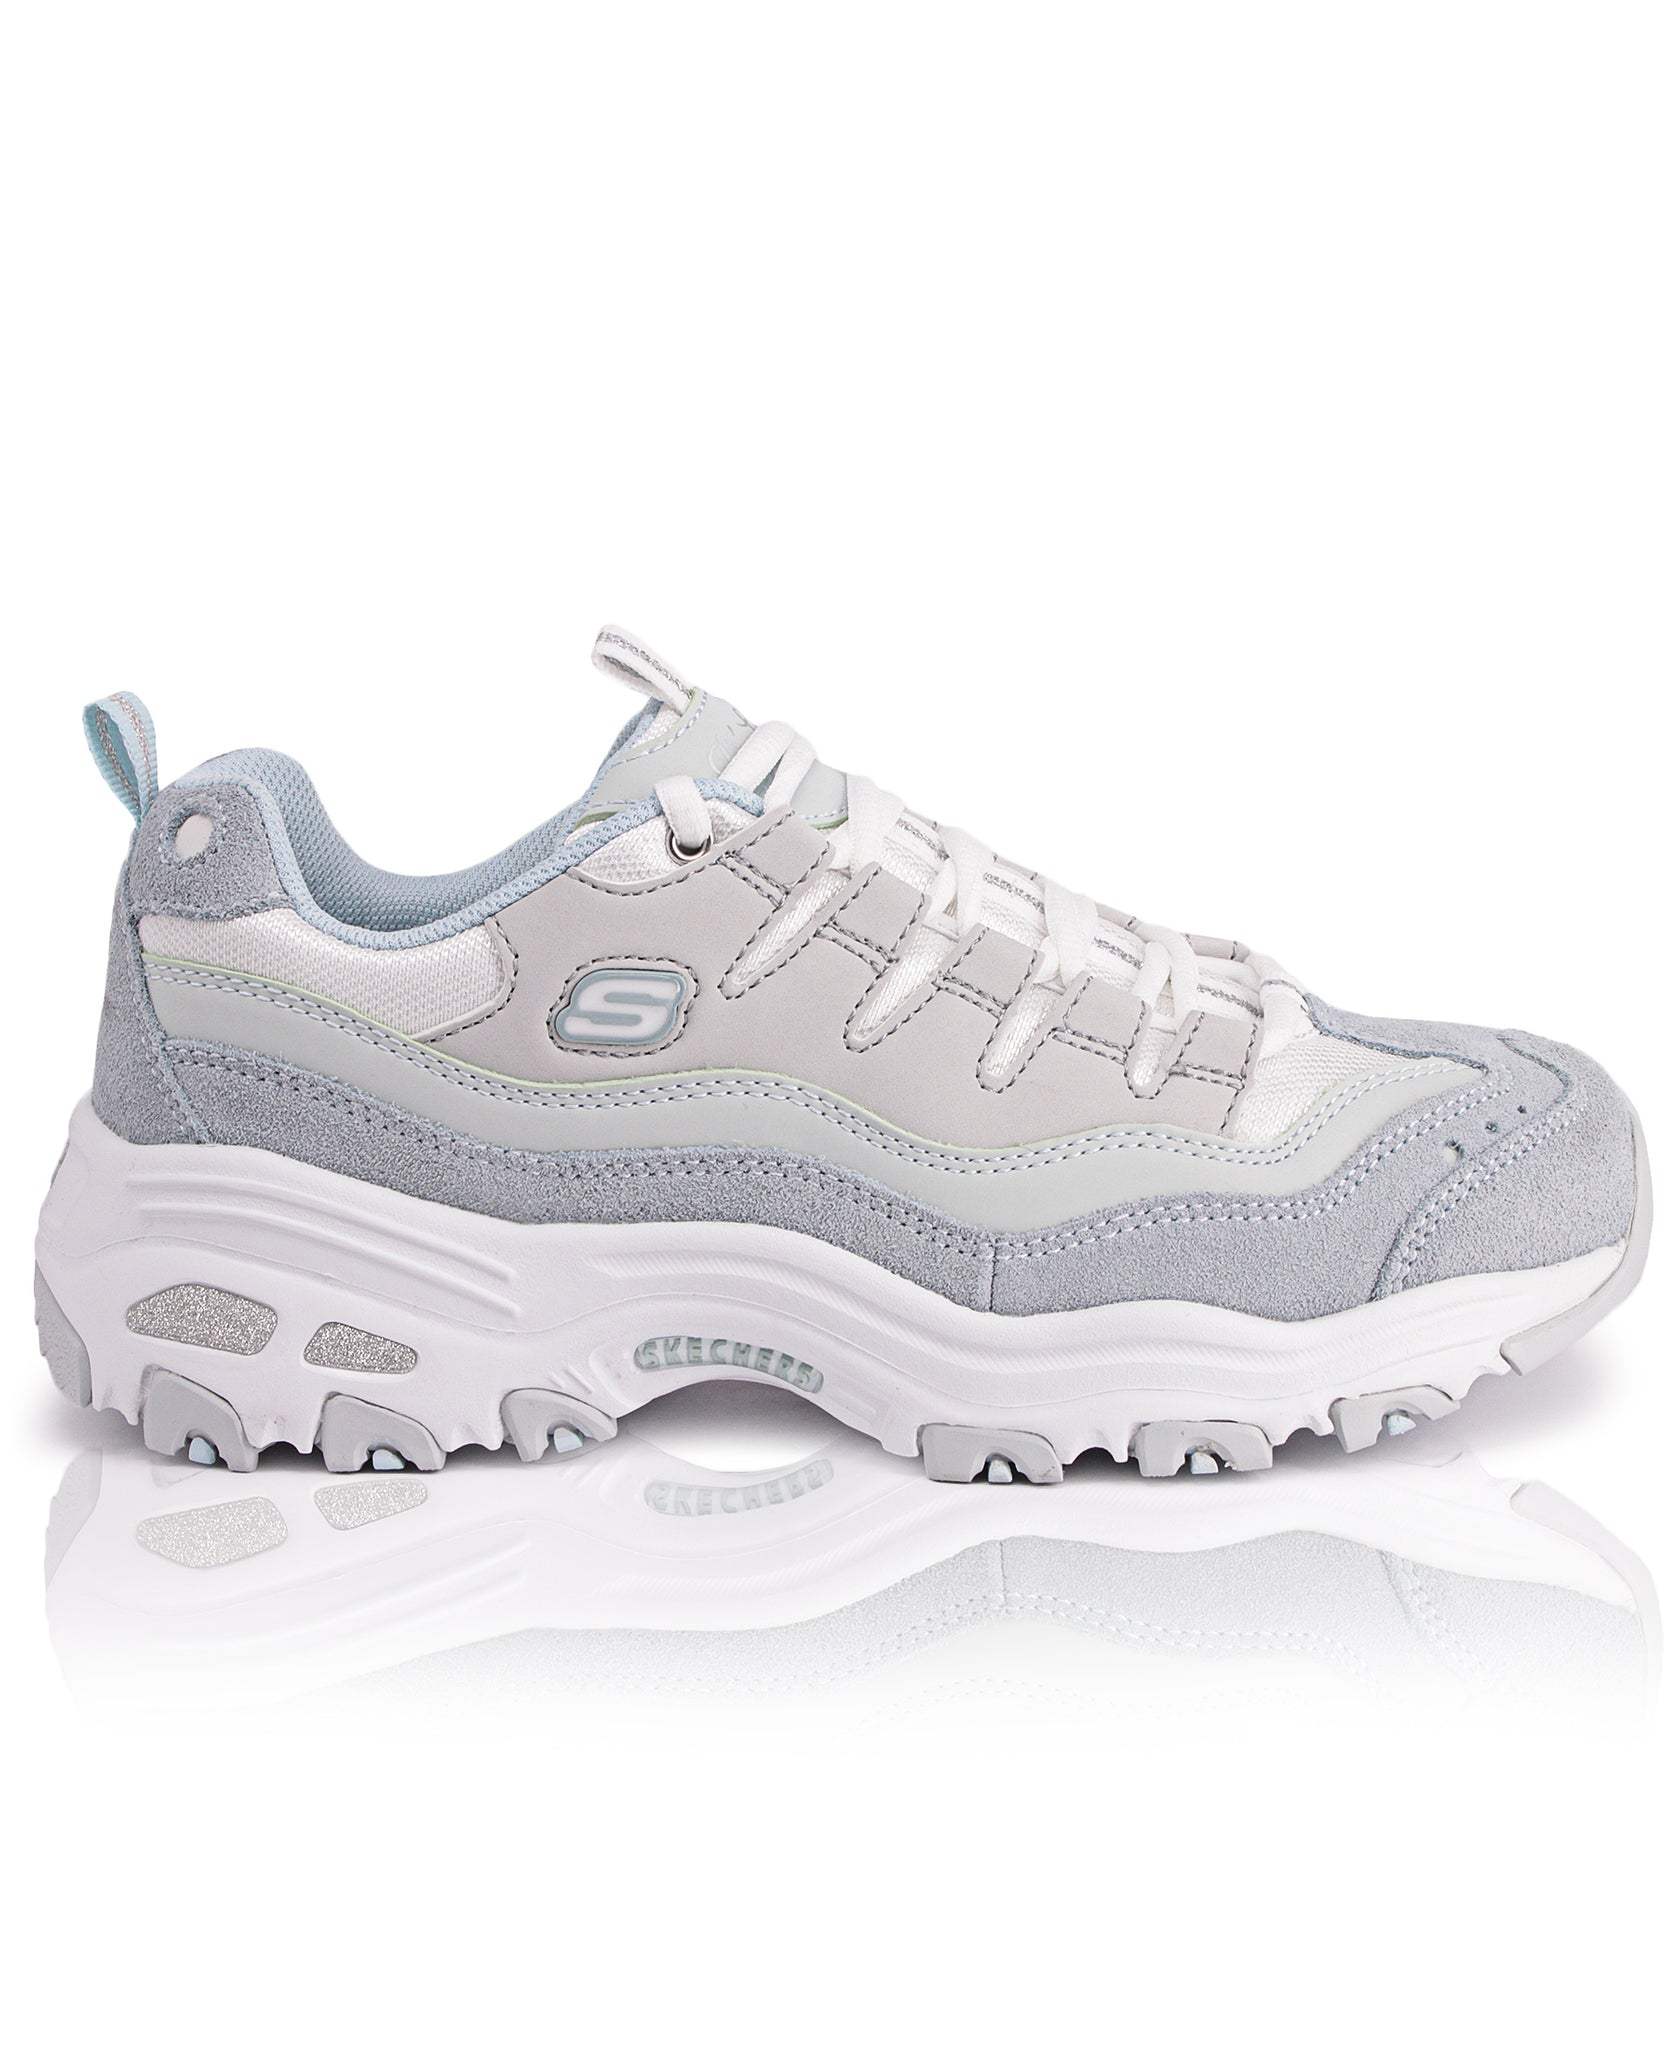 Ladies' D Lites Sneakers - Blue